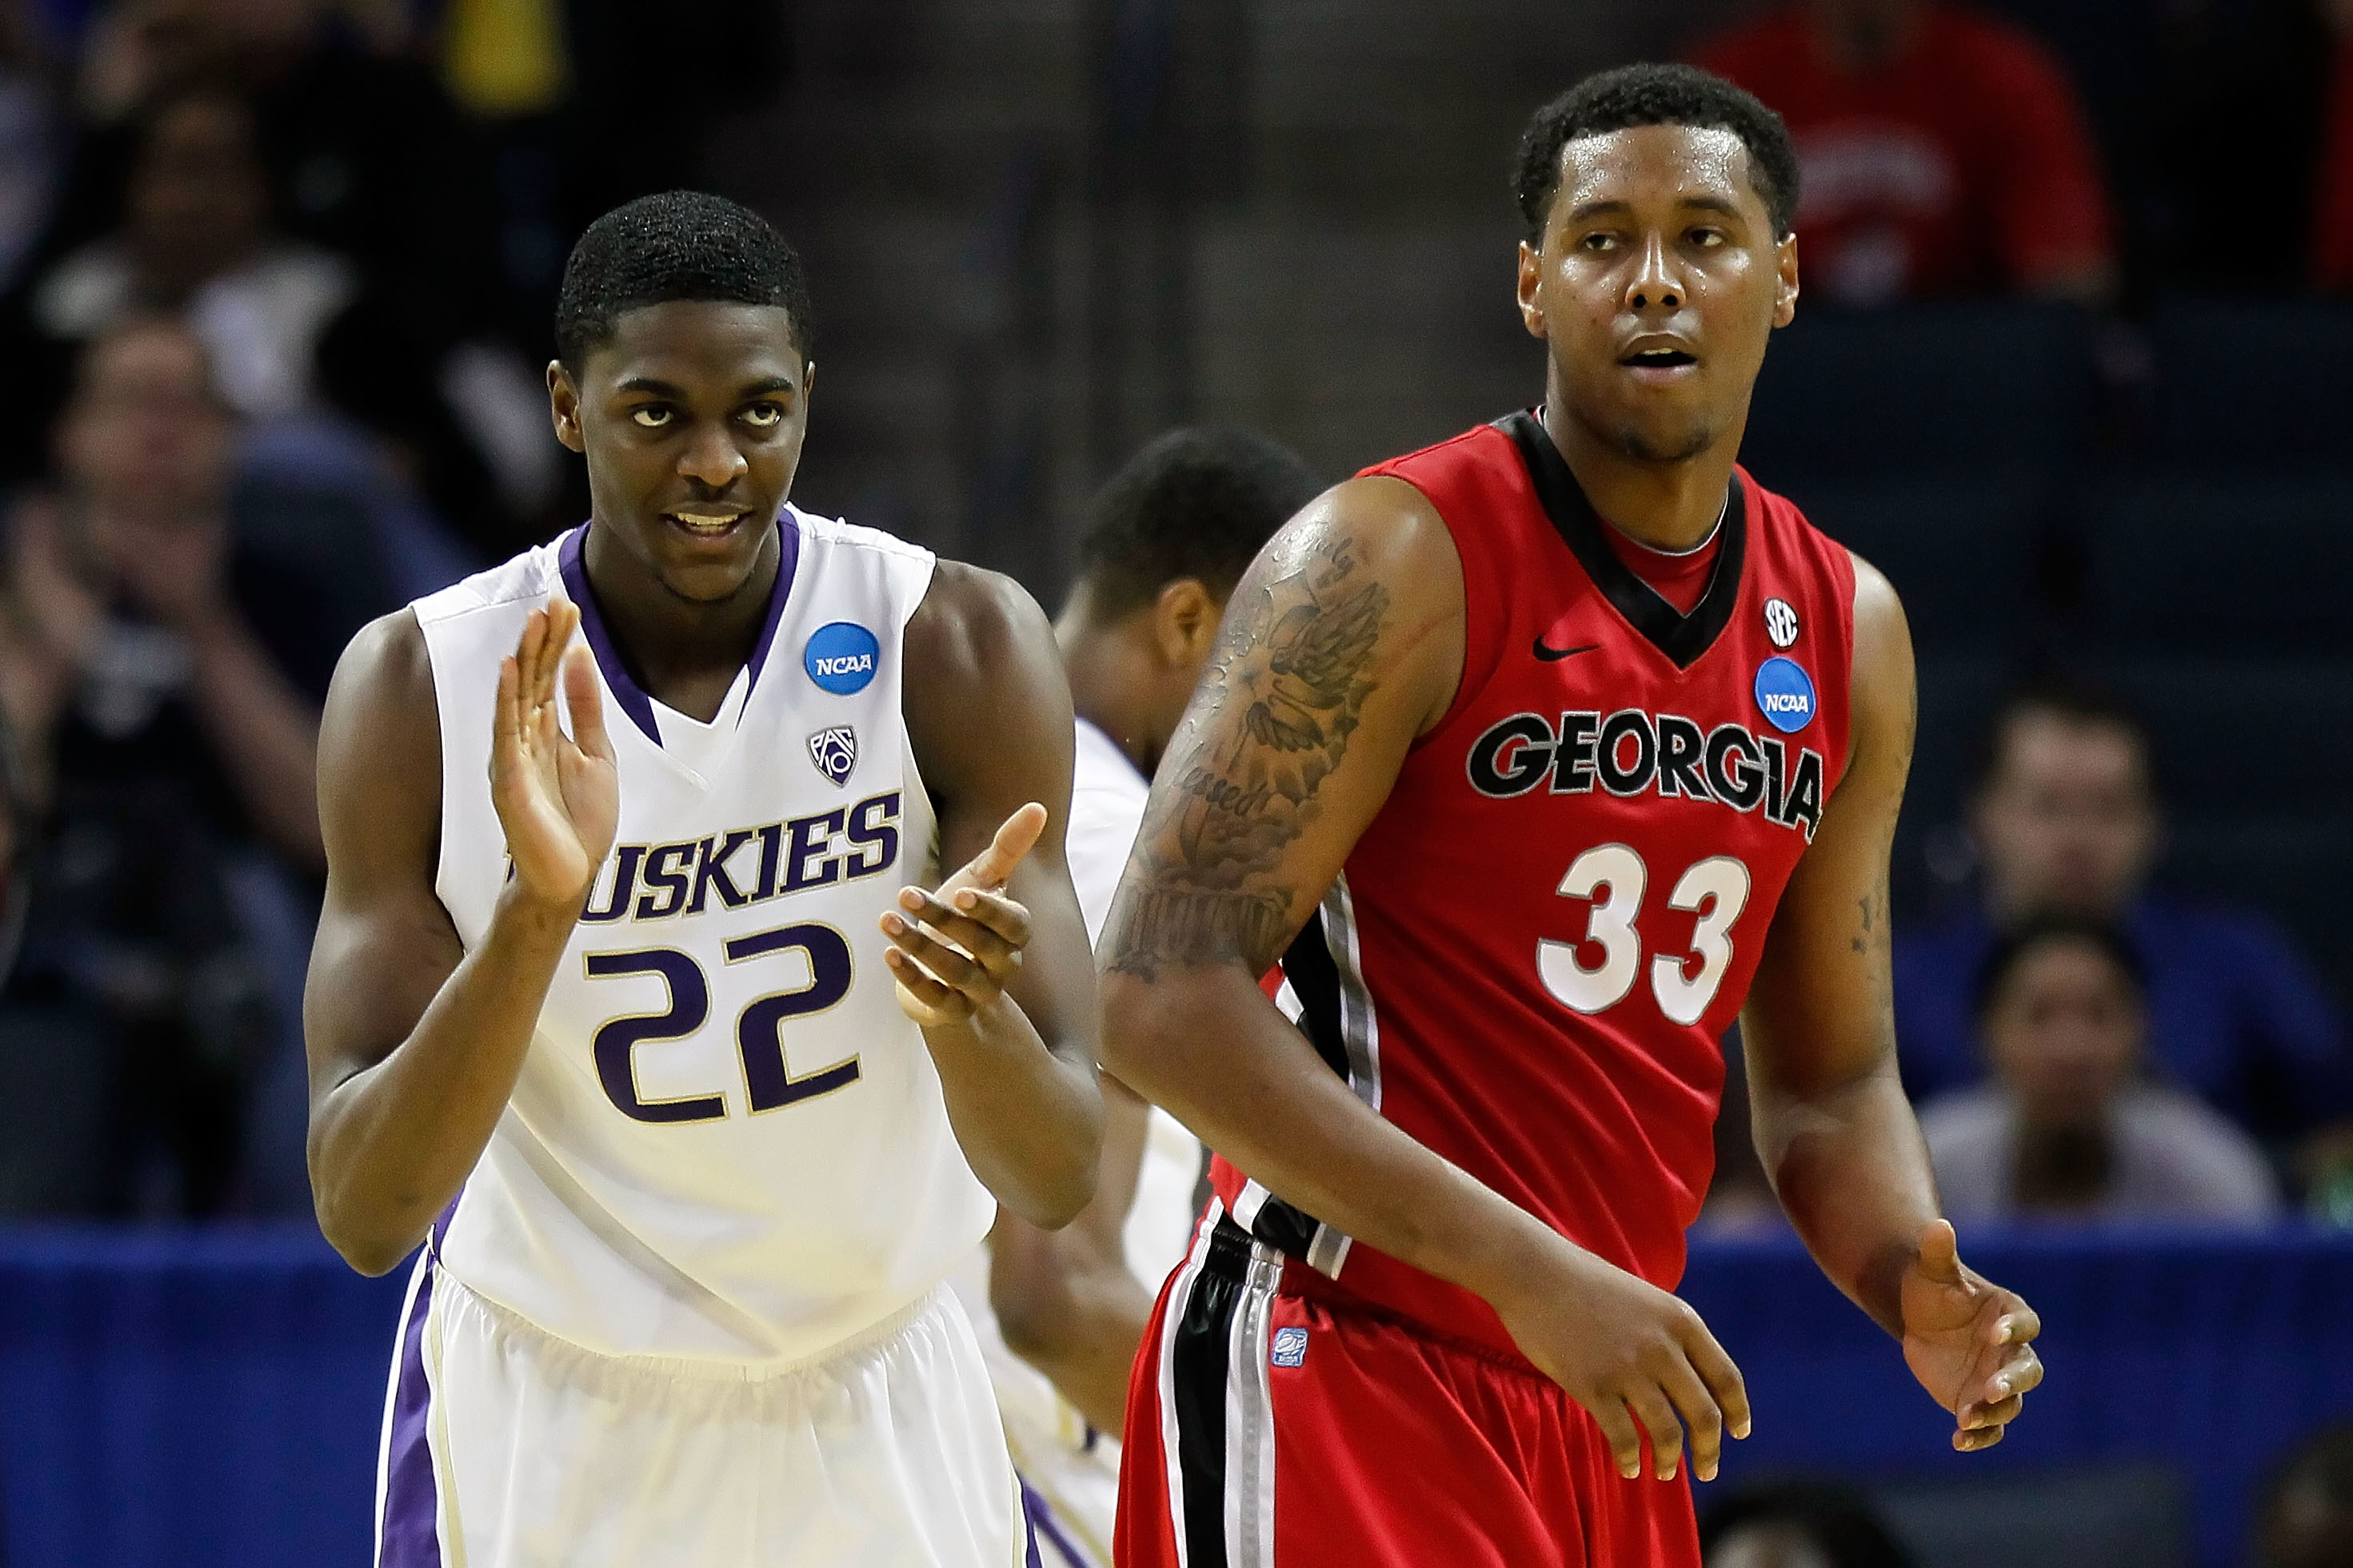 CHARLOTTE, NC - MARCH 18:  Justin Holiday #22 of the Washington Huskies reacts alongside Trey Thompkins #33 of the Georgia Bulldogs in the second half during the second round of the 2011 NCAA men's basketball tournament at Time Warner Cable Arena on March